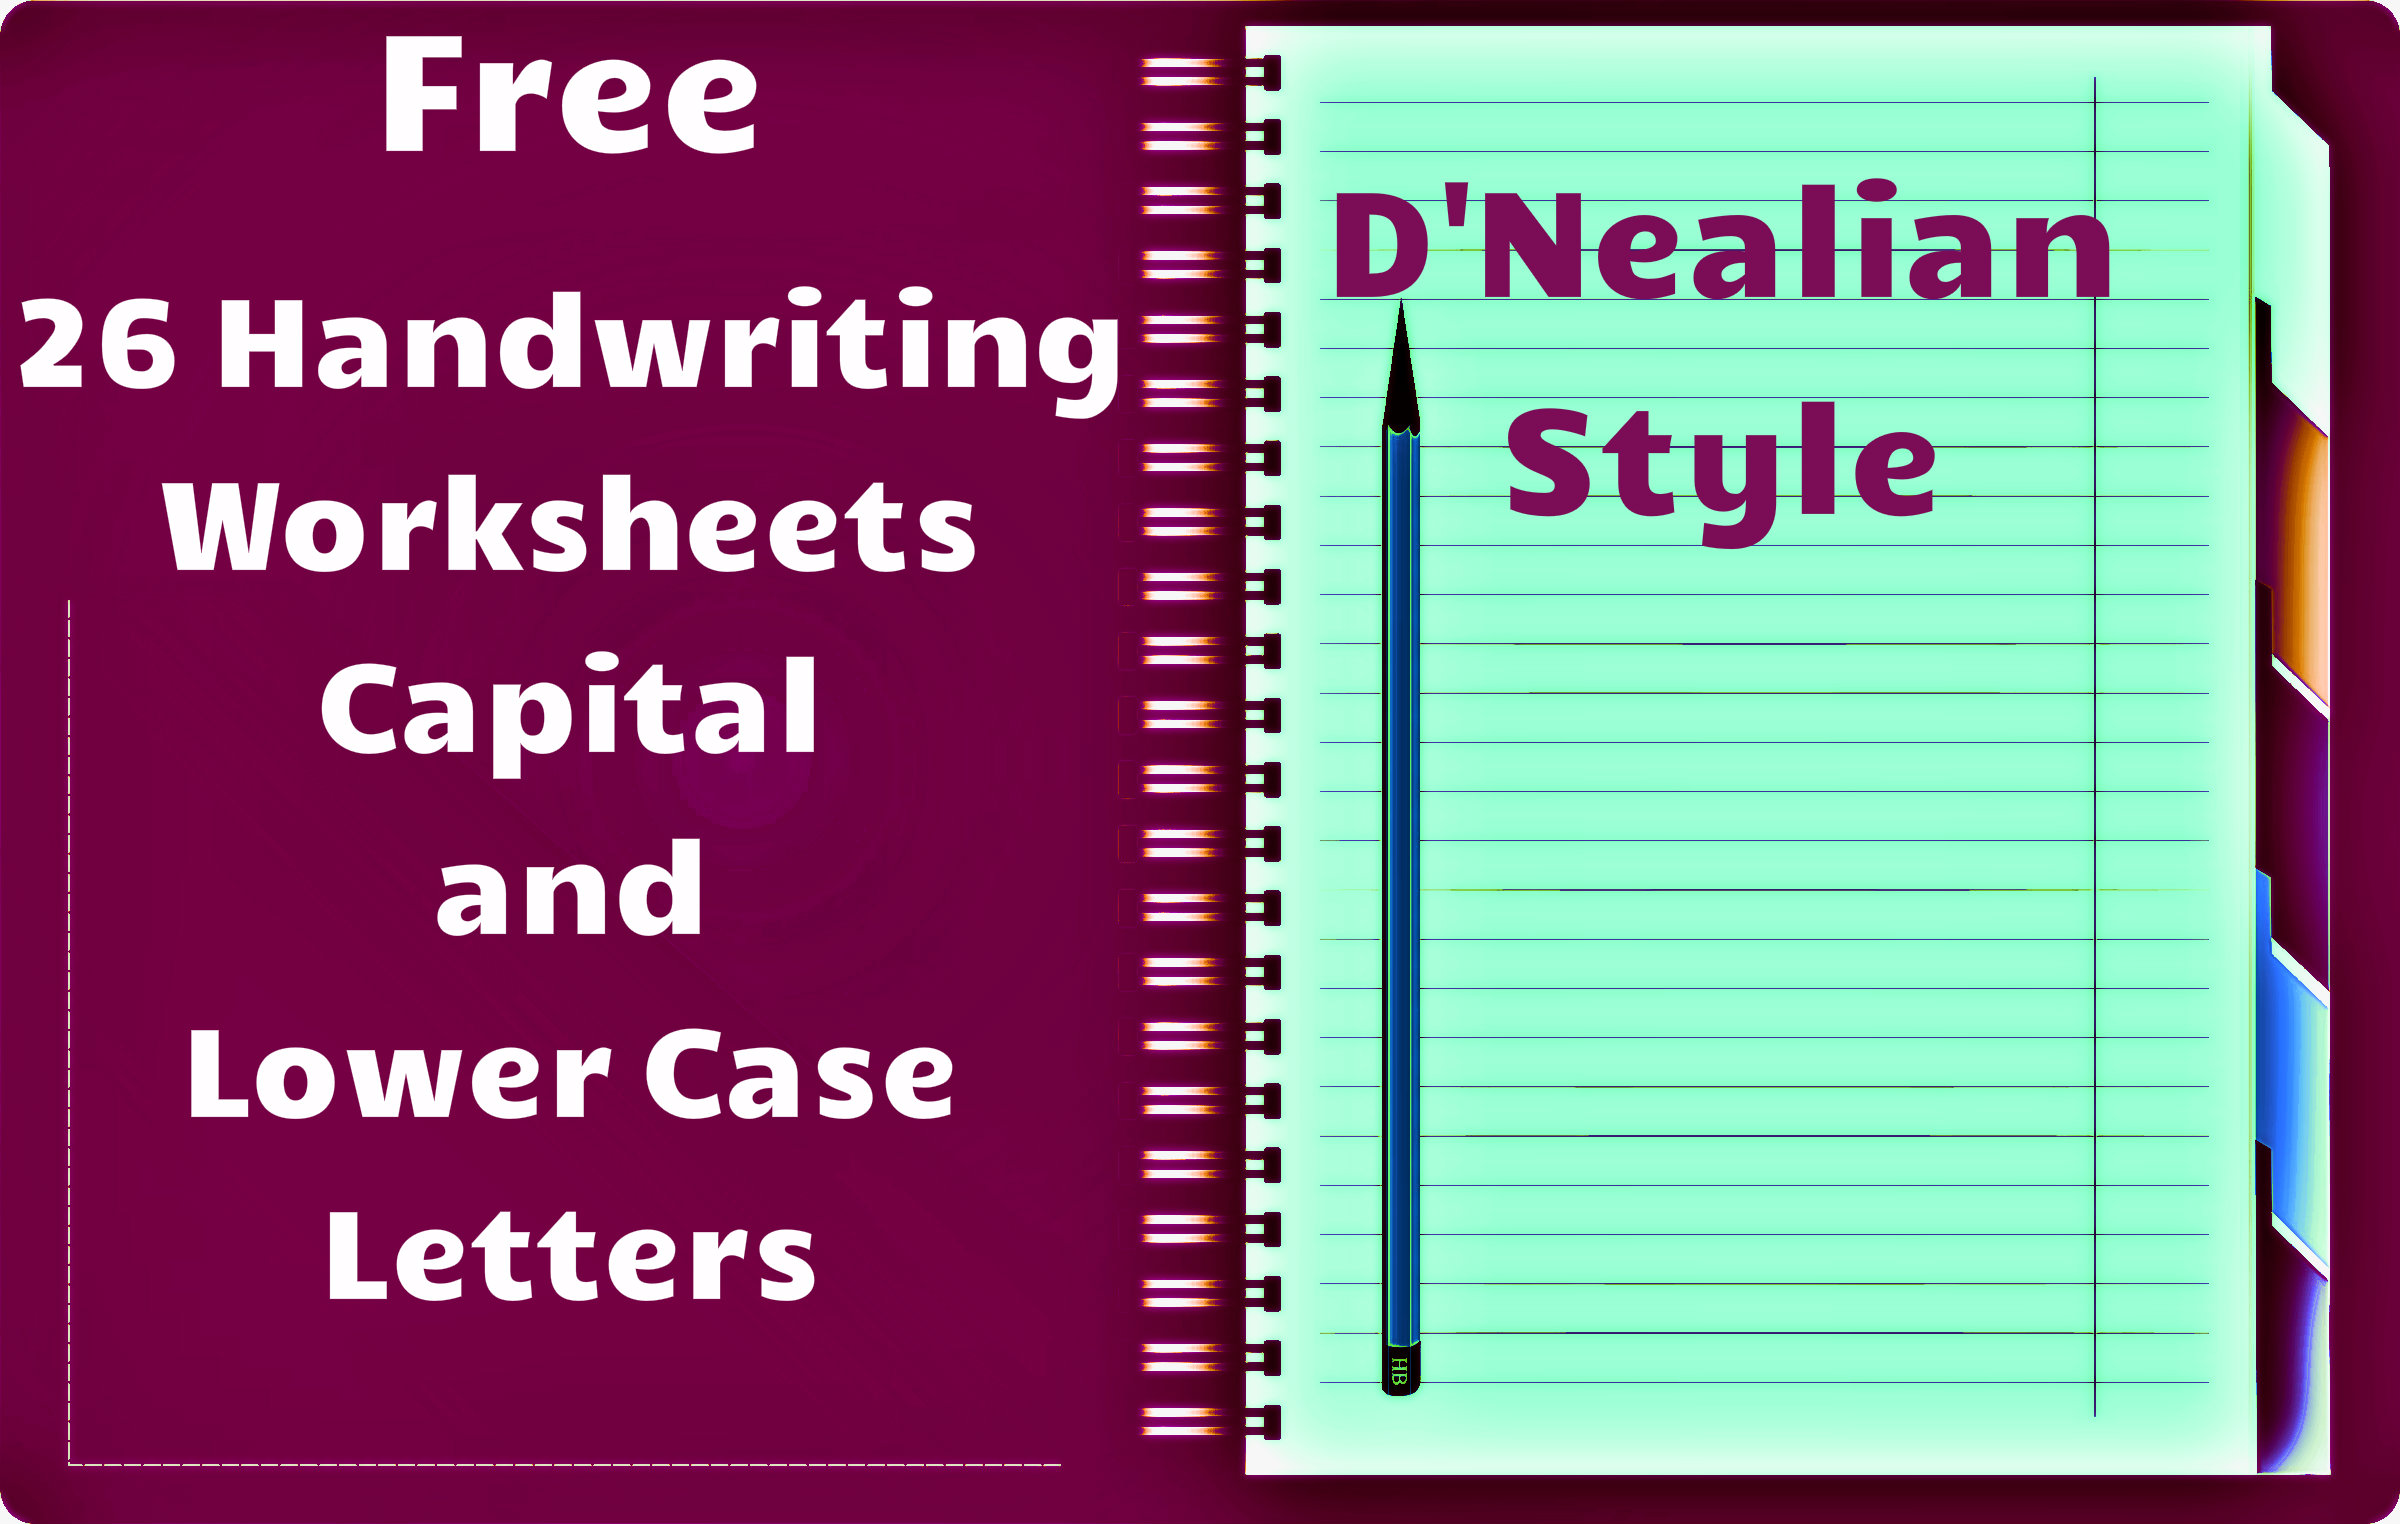 {Free Handwriting Worksheets – D Nealian Cursive Handwriting Worksheets